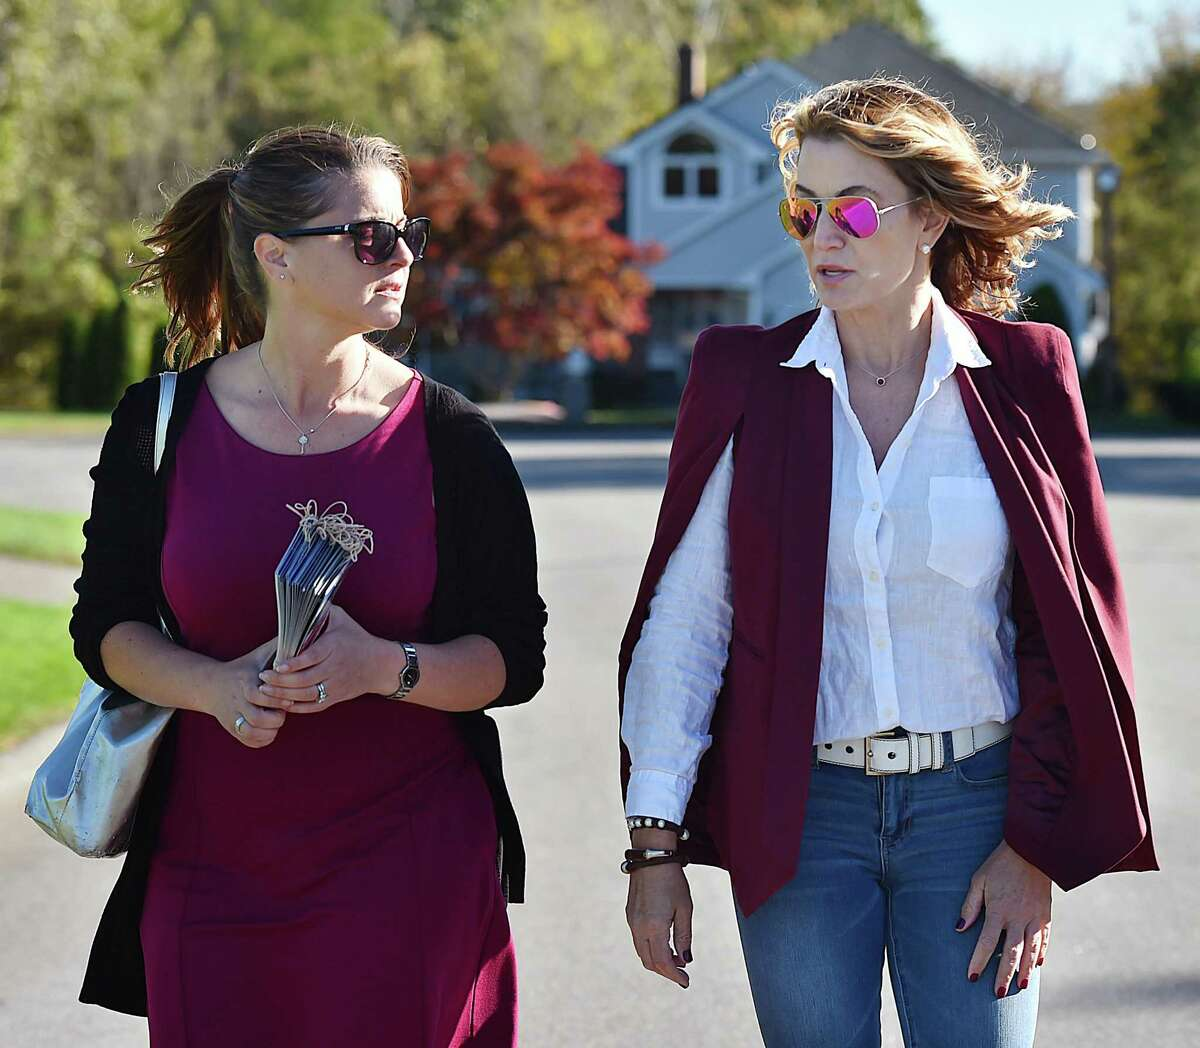 State Rep. Christie Carpino, R-Cromwell, left campaigns door to door with help from her House Minority Leader Themis Klarides, R-Derby Friday, October 12, 2018, in Cromwell.